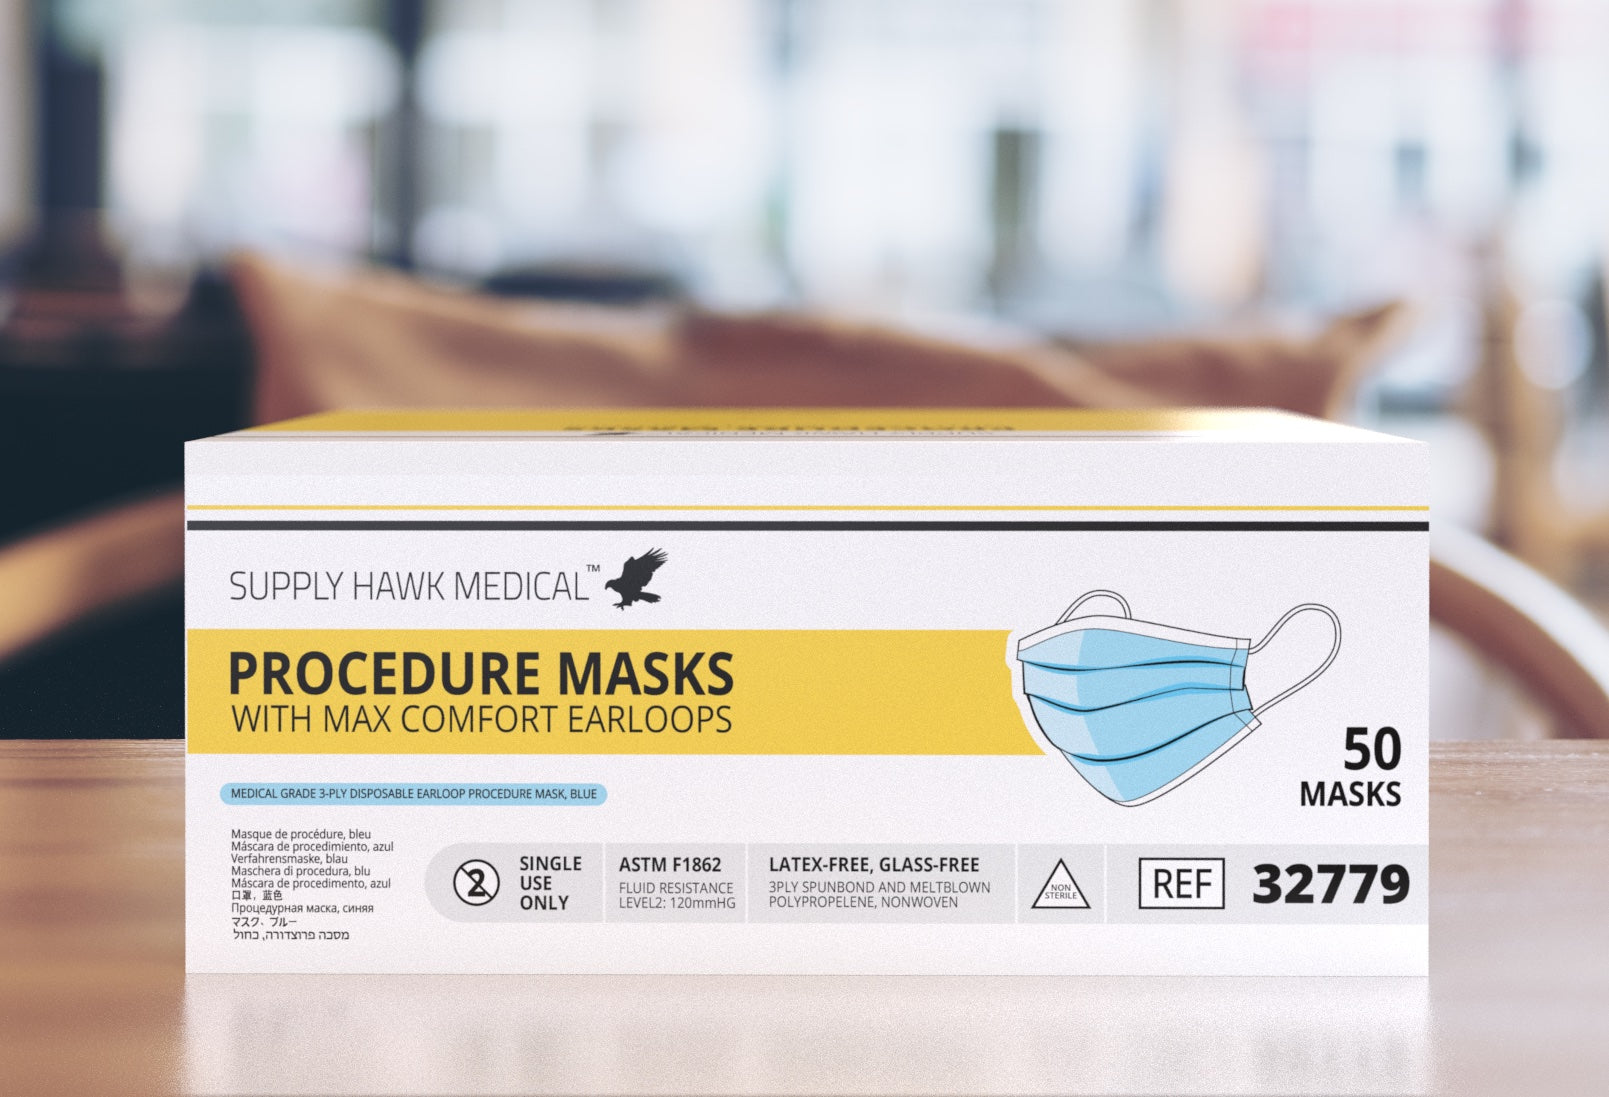 Medical-Grade Procedure Mask with Fluid Resistance